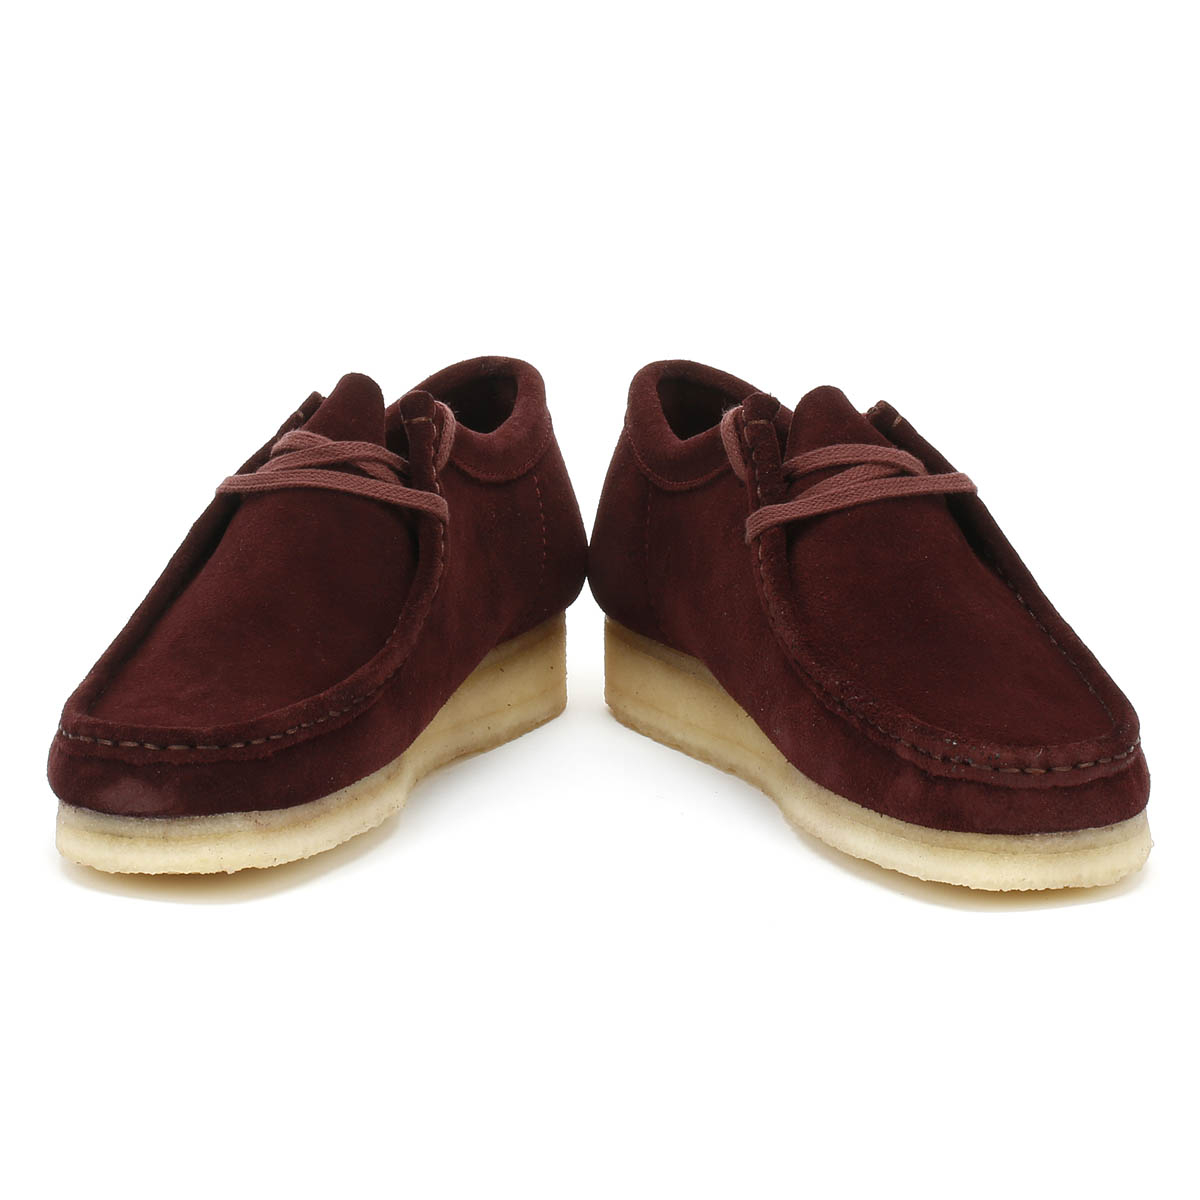 43567b685 Clarks Originals Mens Shoes Wallabee Burgundy Red Lace Up Suede ...